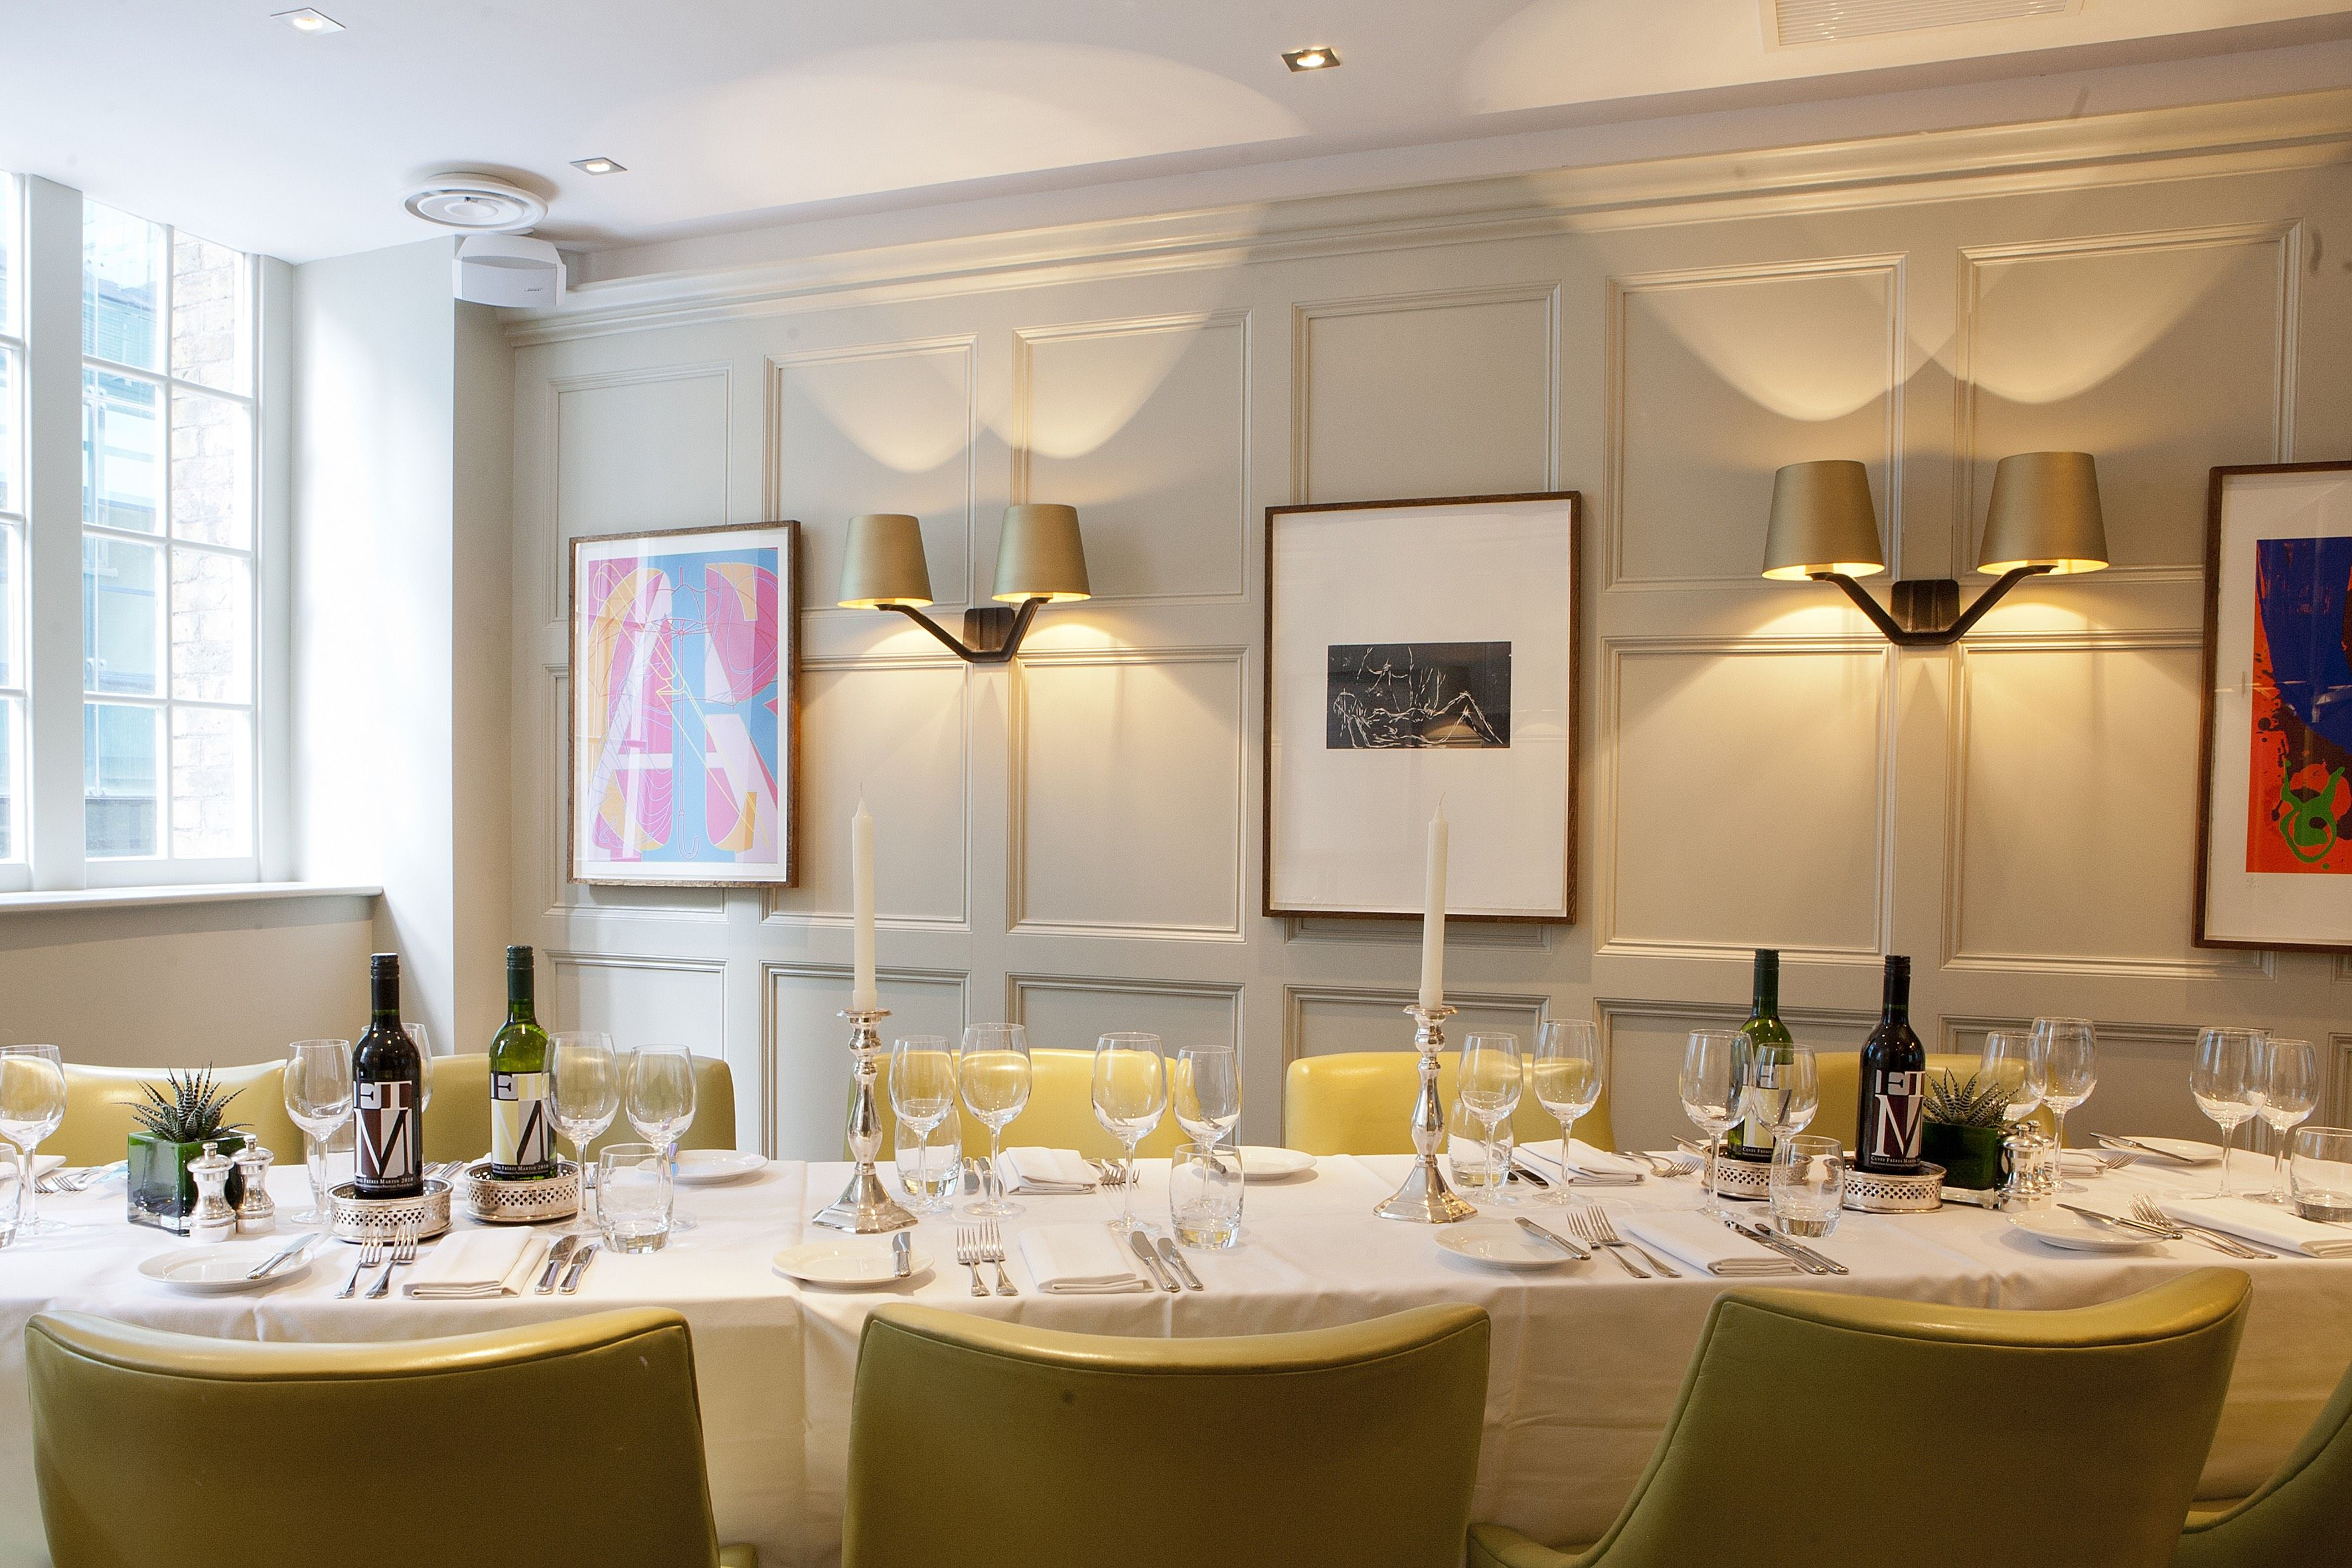 Gallery  Chiswell Street Dining Rooms  Chiswell Street Dining Amusing Chiswell Street Dining Room Inspiration Design